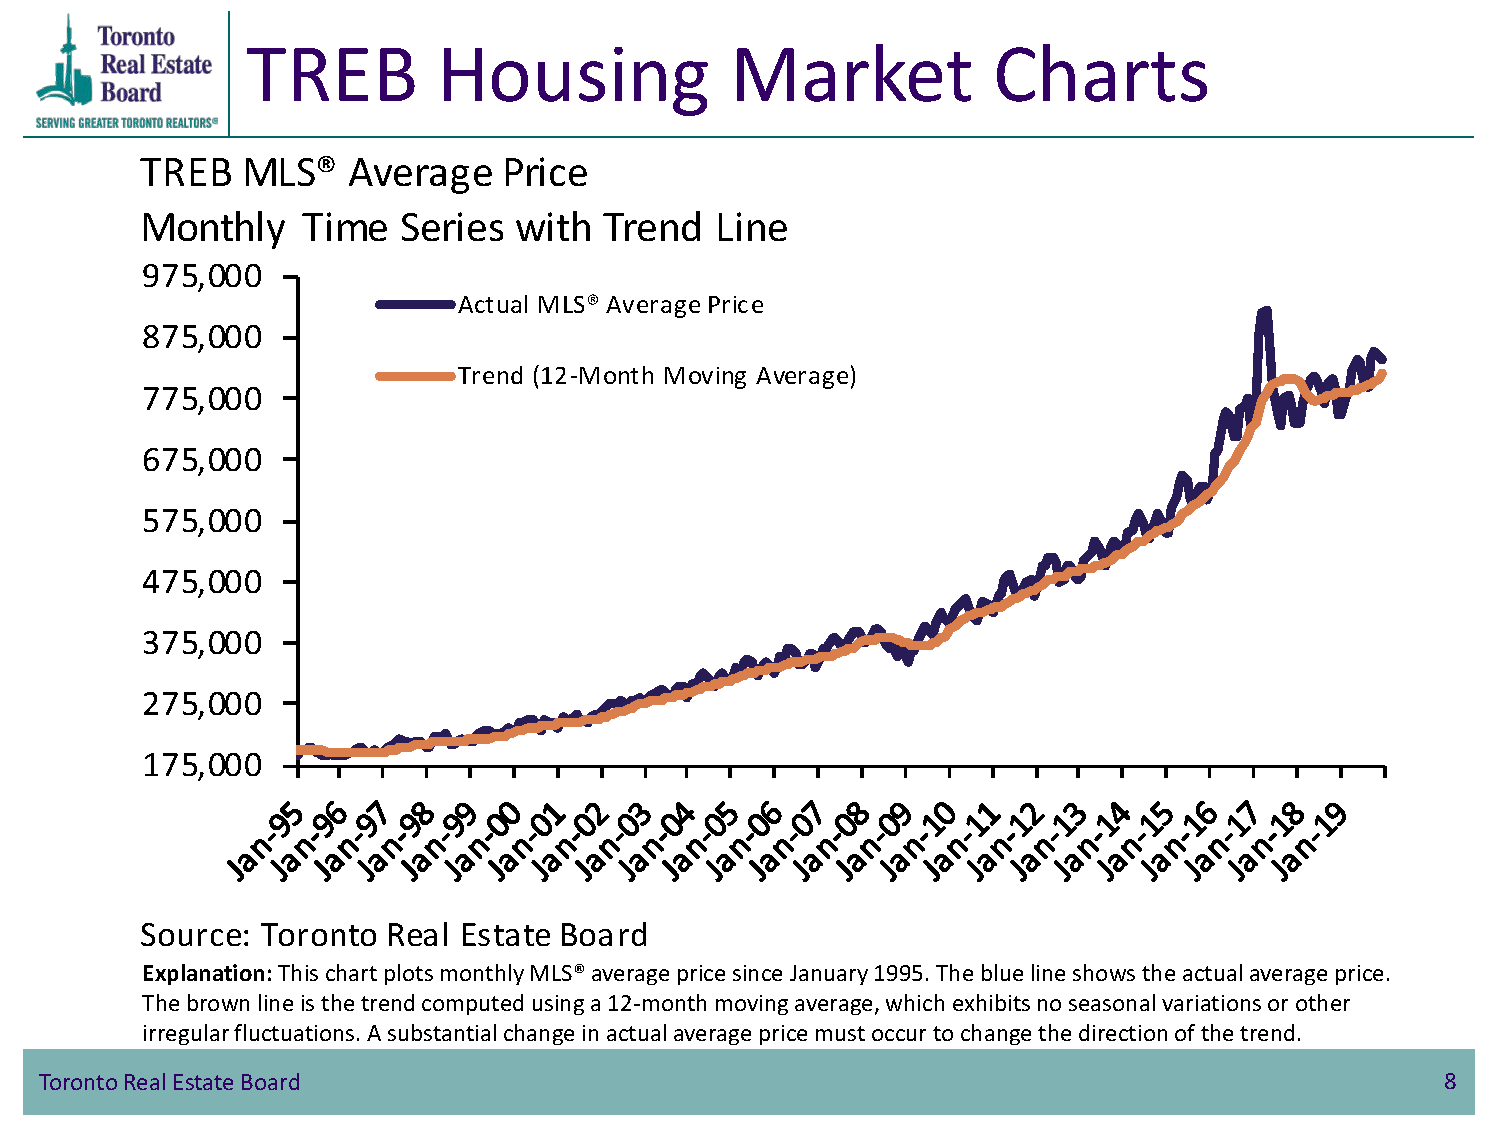 TREB Housing Market Charts - TorontoMLS Sales to New Listings Comparison